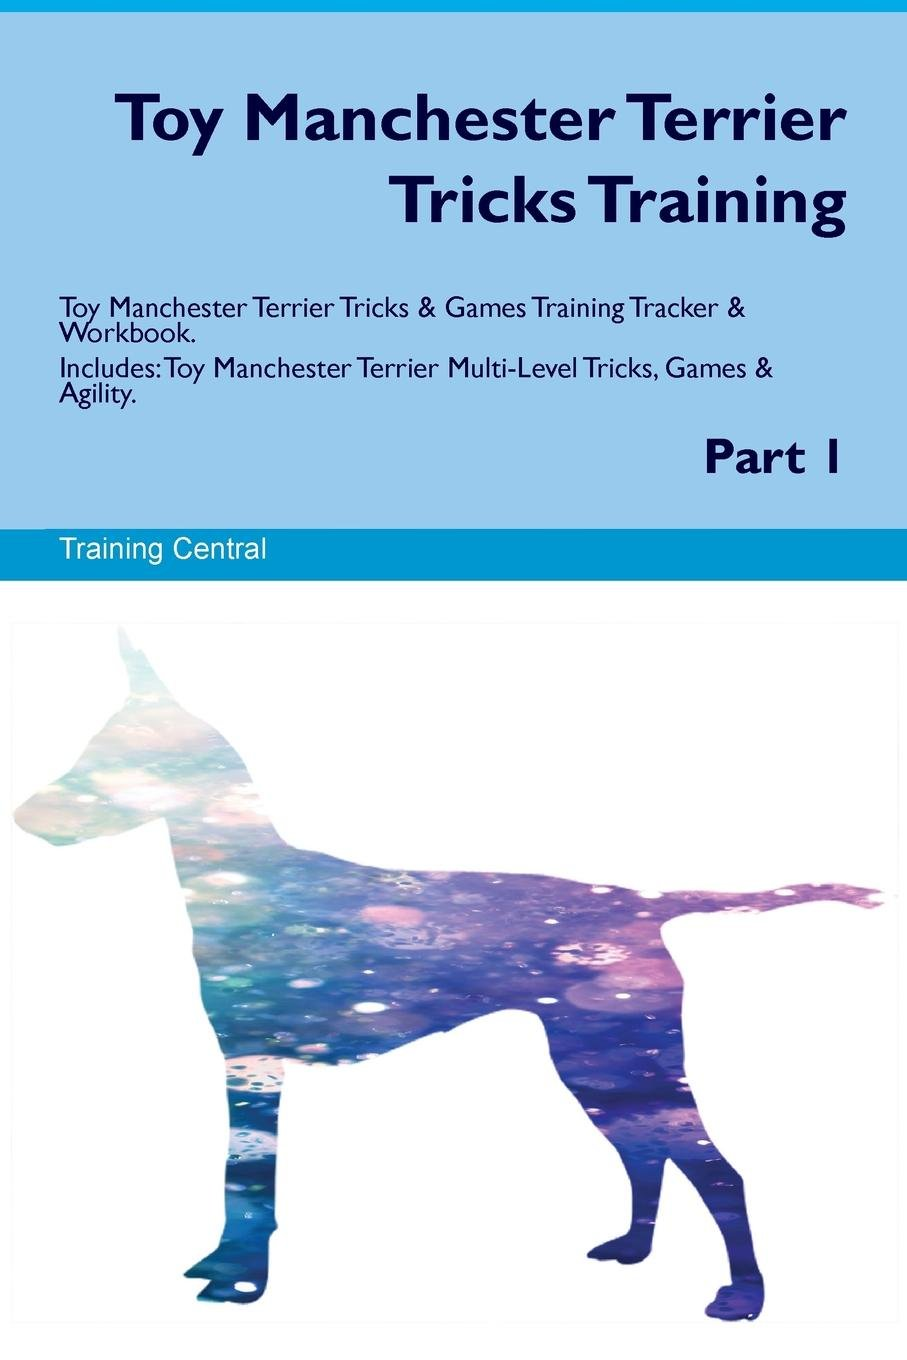 Toy Manchester Terrier Tricks Training Toy Manchester Terrier Tricks & Games Training Tracker & Workbook.  Includes: Toy Manchester Terrier Multi-Level Tricks, Games & Agility. Part 1 pdf epub